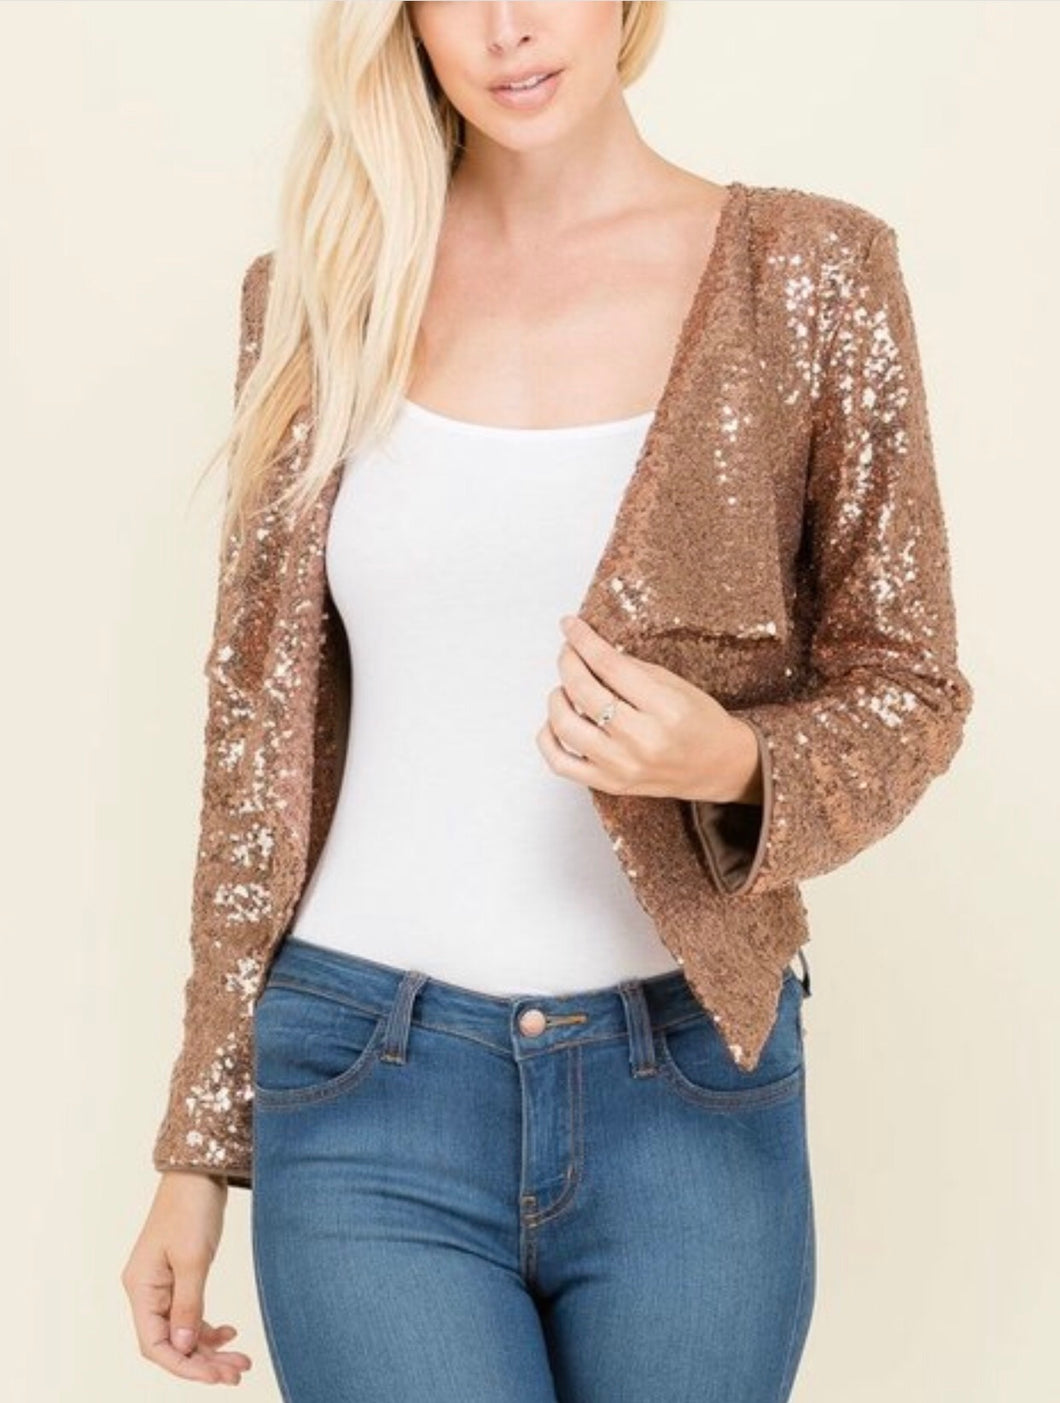 Sin City Bling Blazer - Bronze